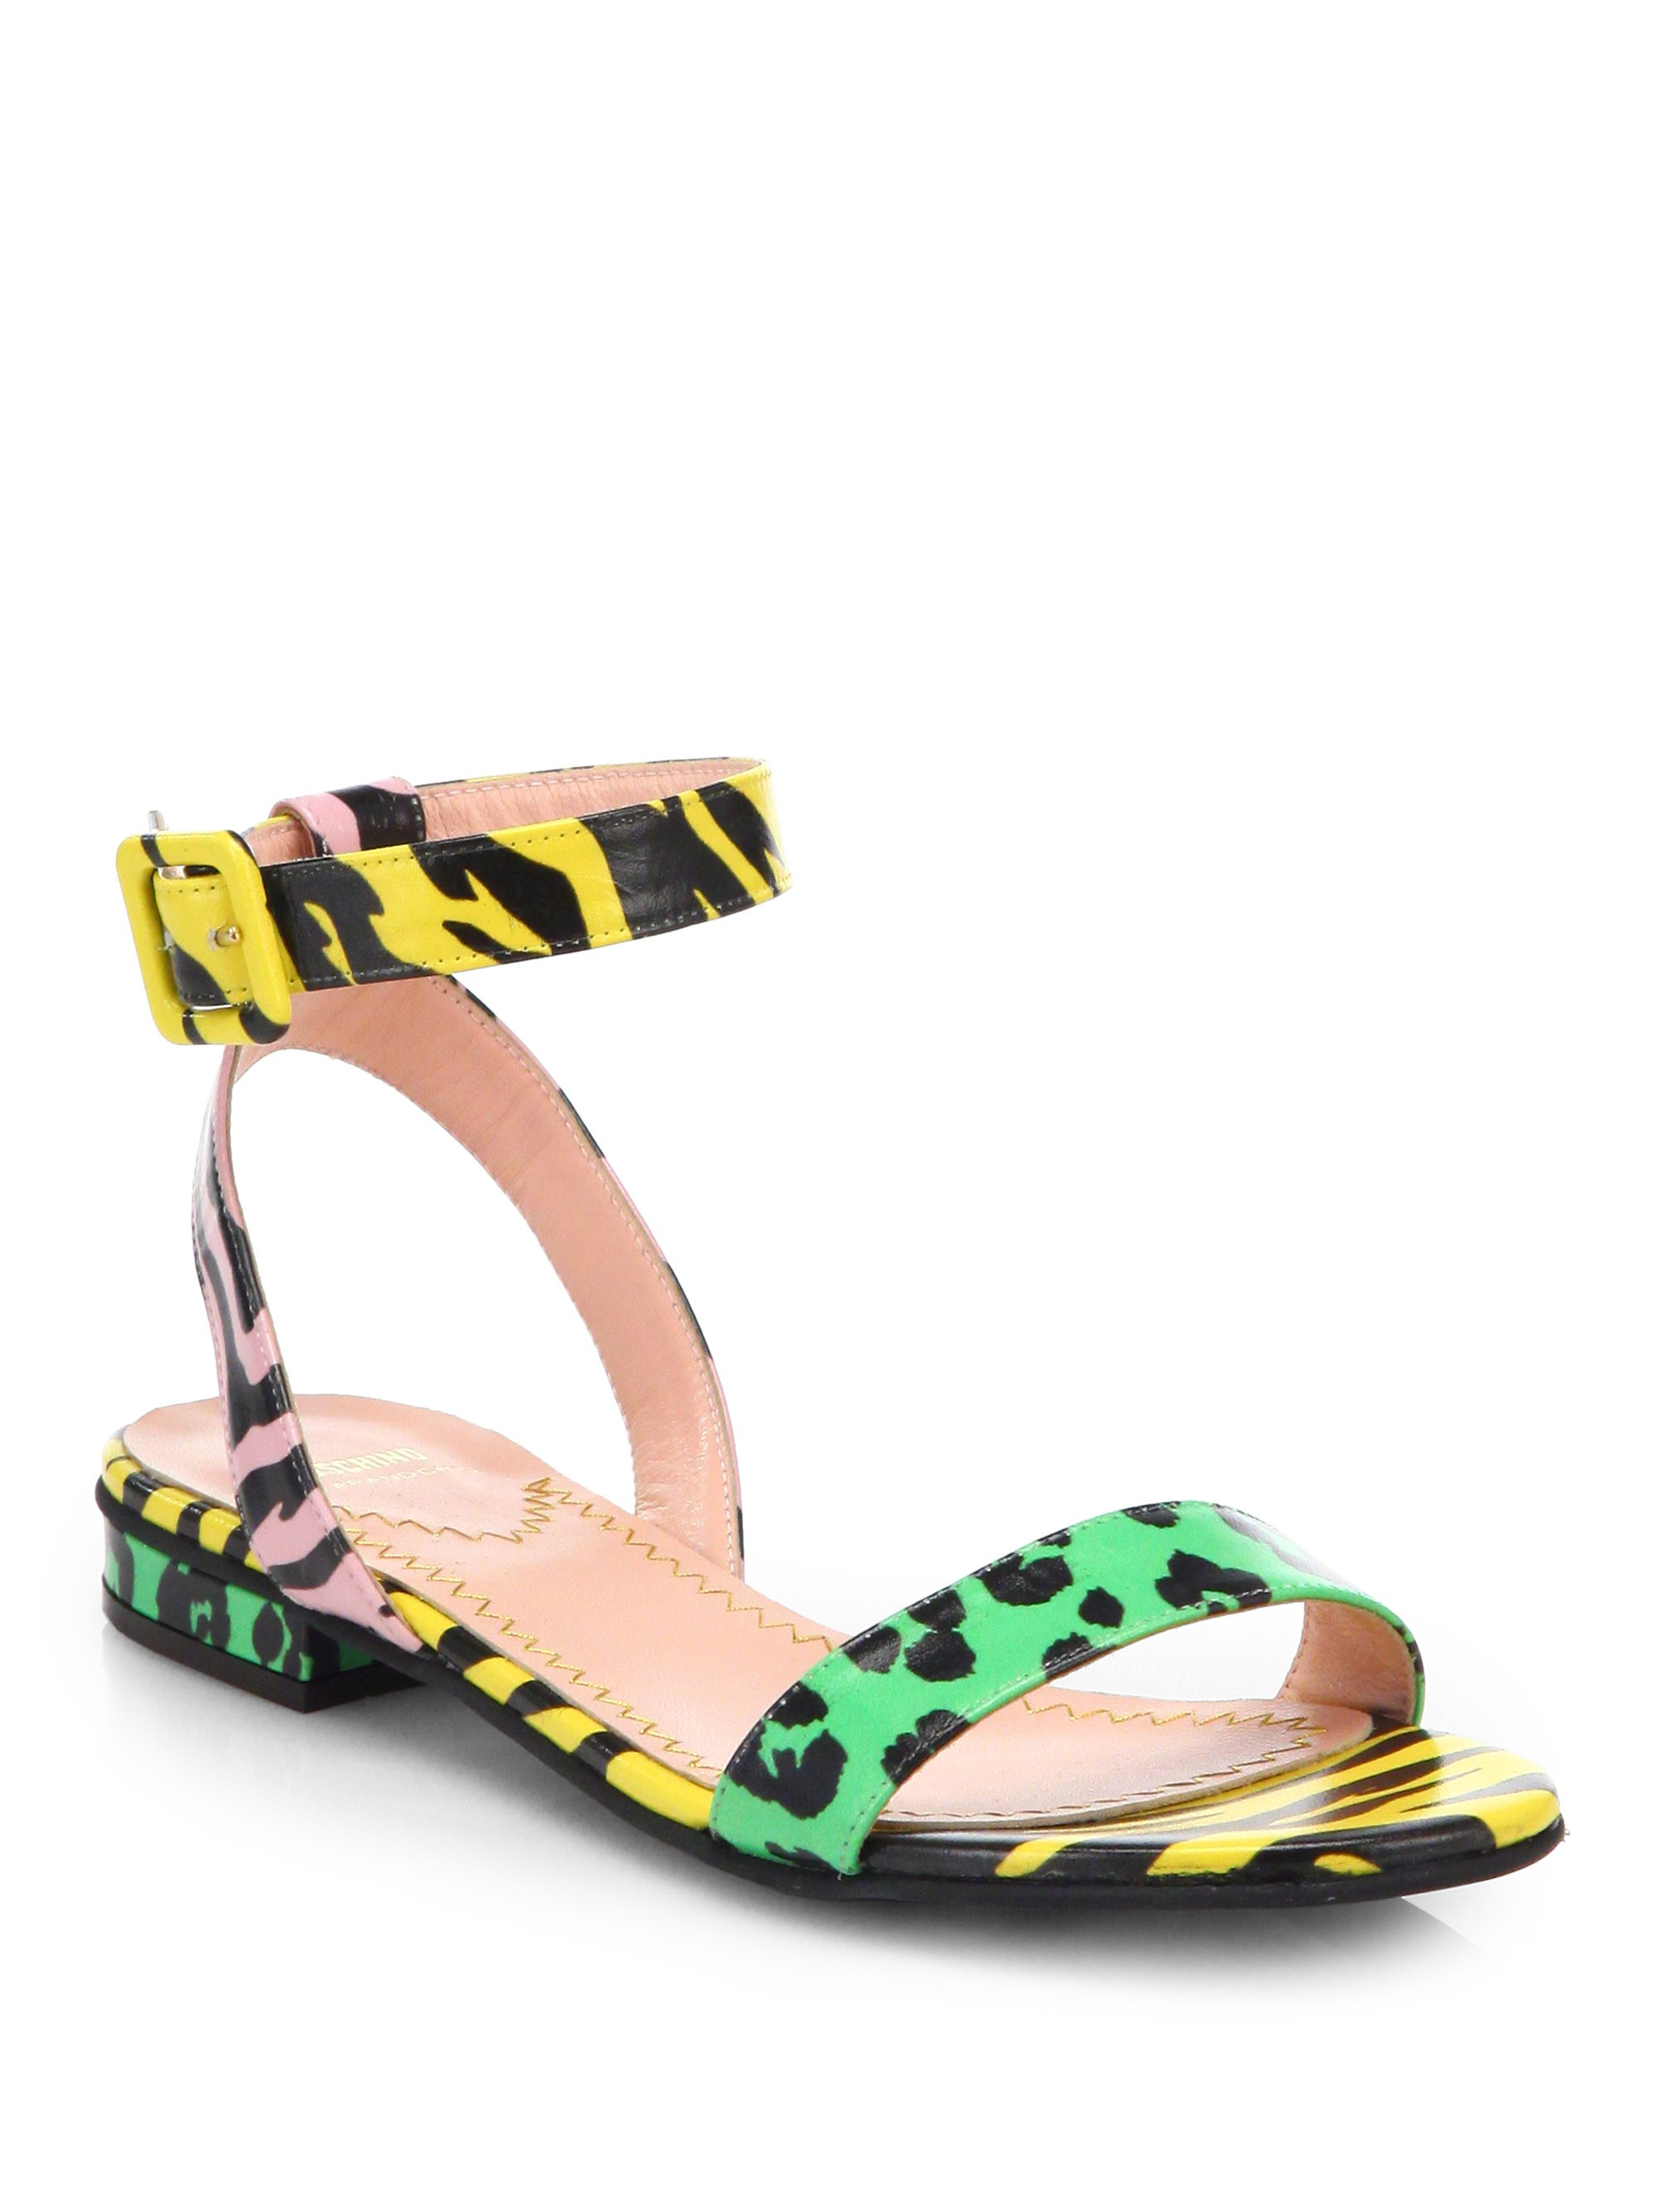 MOSCHINO CHEAP AND CHIC Sandals cheap fast delivery free shipping largest supplier free shipping really x8gau